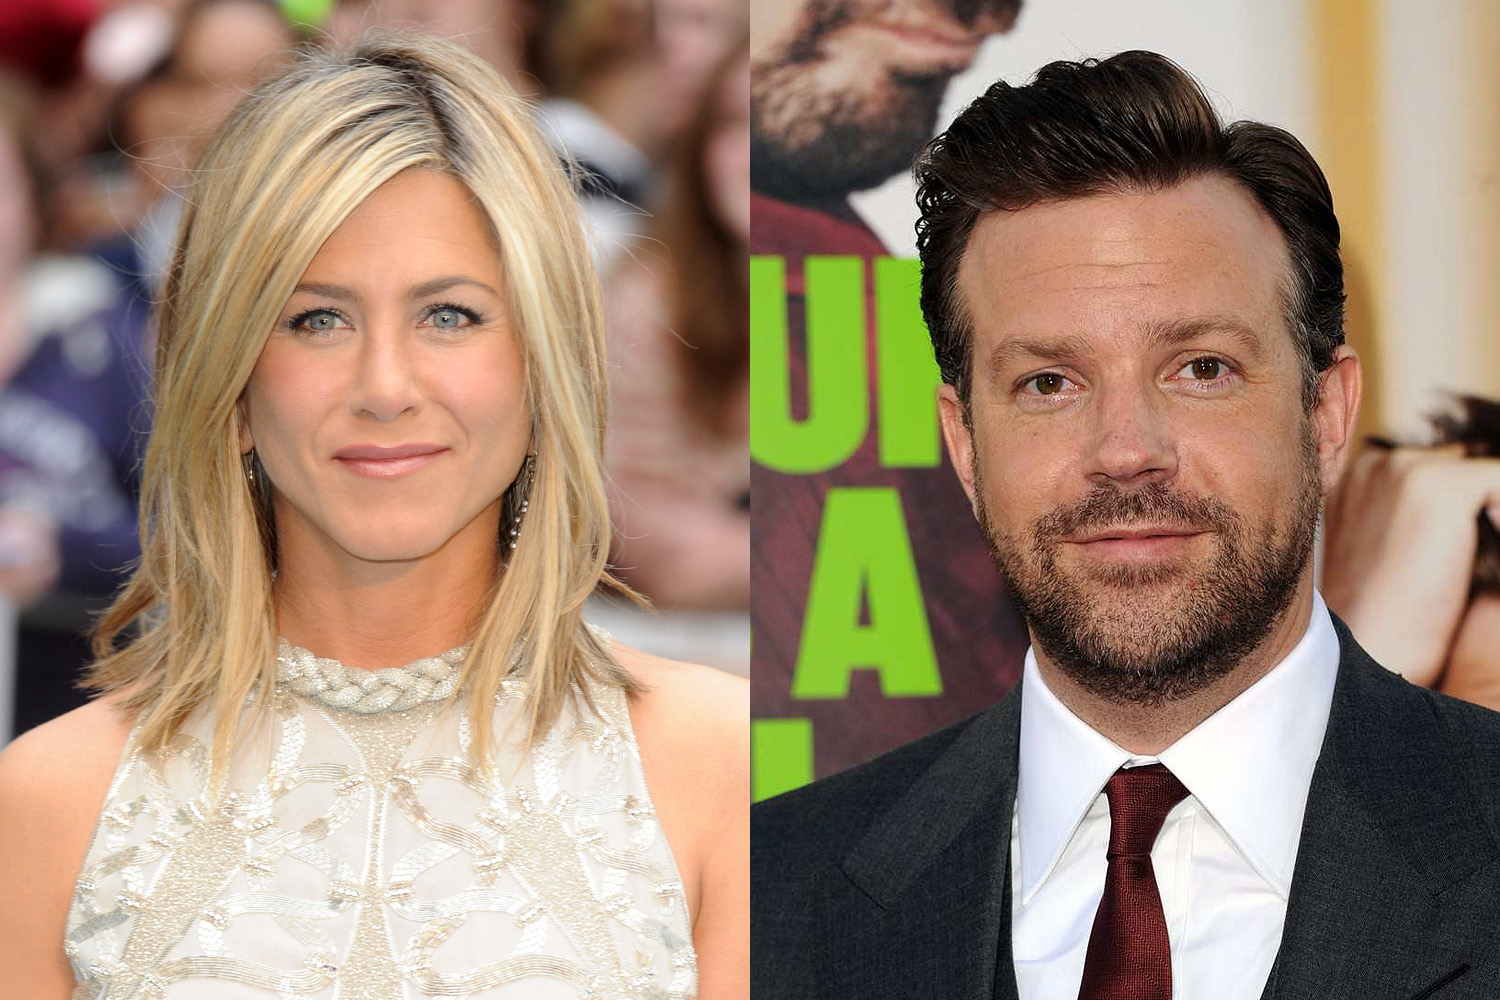 Digitista Mediawave New Line Cinema Starts Filming We Re The Millers Starring Jennifer Aniston And Jason Sudeikis